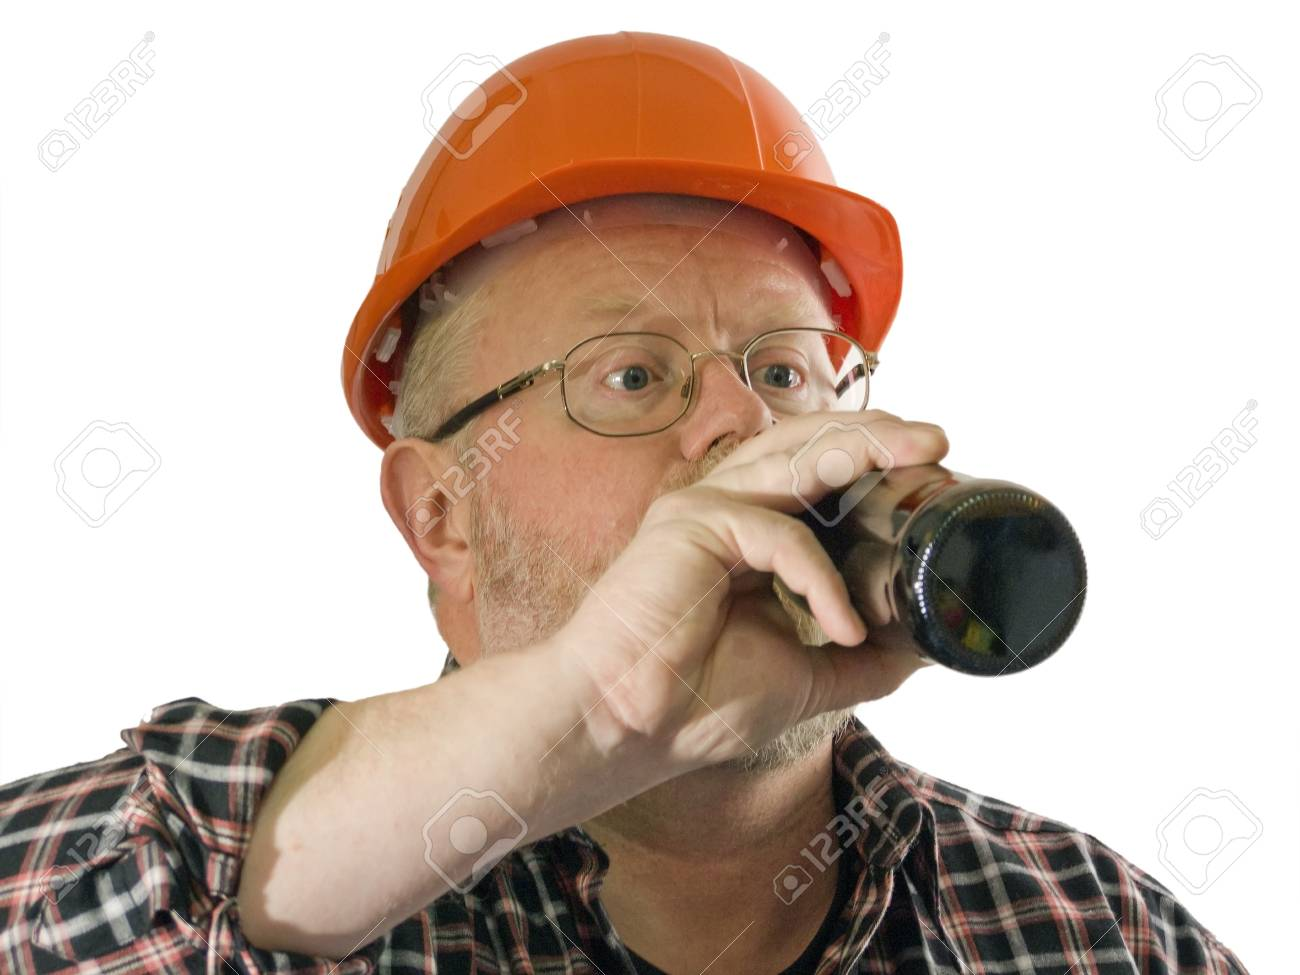 Craftsman with a bottle beer on white background Stock Photo - 4325389